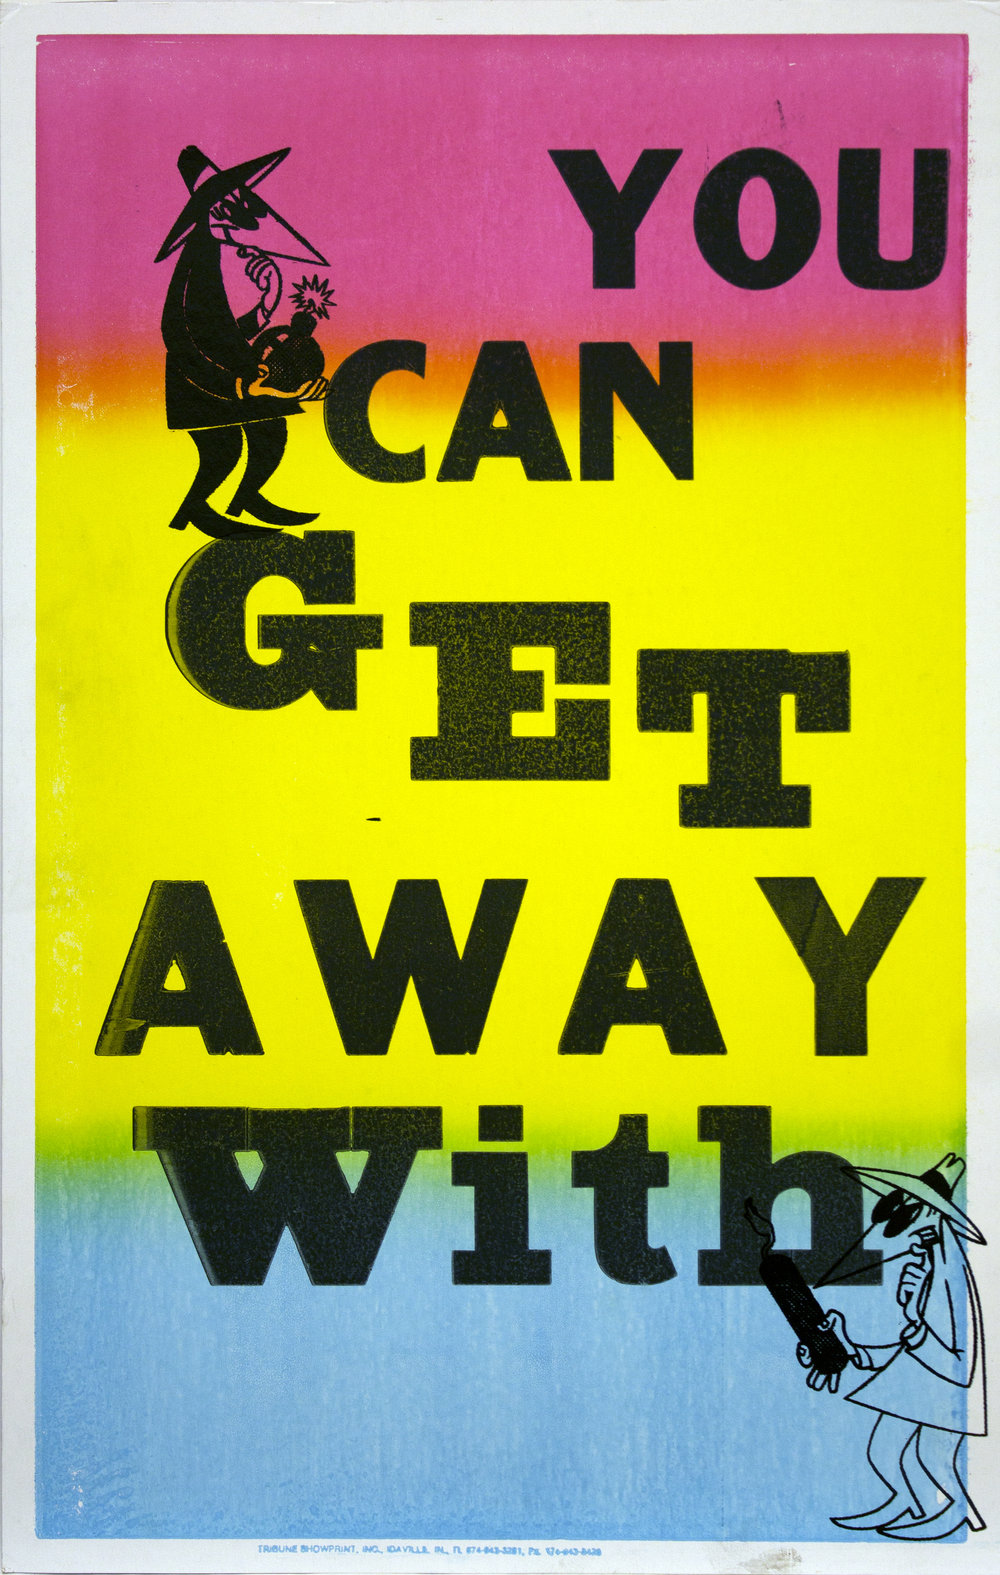 Christopher Michlig and Jan Tumlir,  Art 3: Art and Non-Art (YOU CAN GET AWAY WITH) , 2017. Silkscreen and letterpress on poster board, 14 x 22 inches